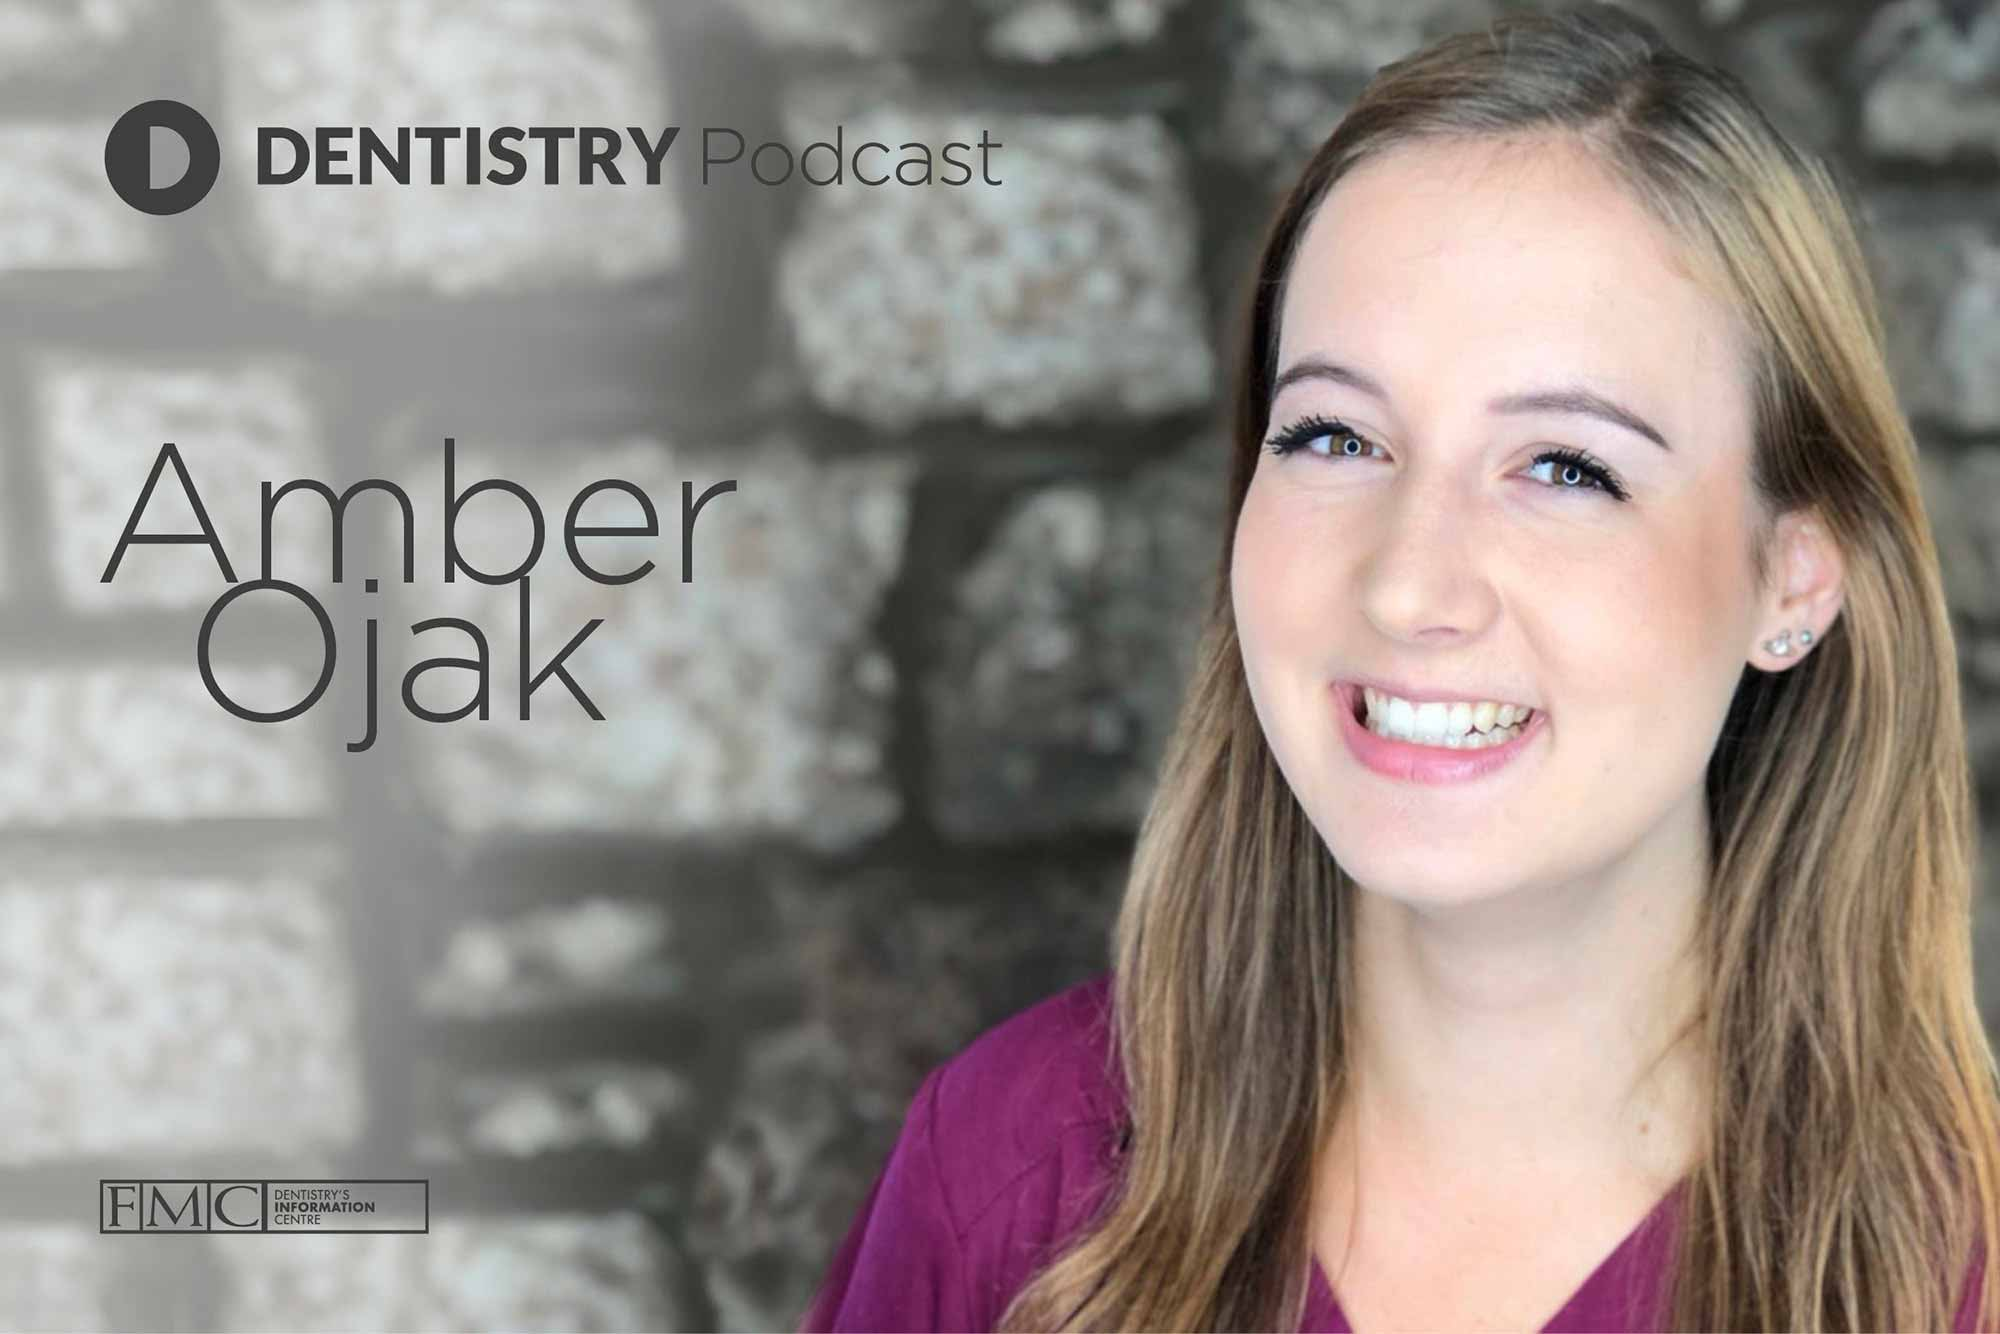 This week we welcome Amber Ojak who discusses why we need to reshape the perception of dental hygienists and therapists